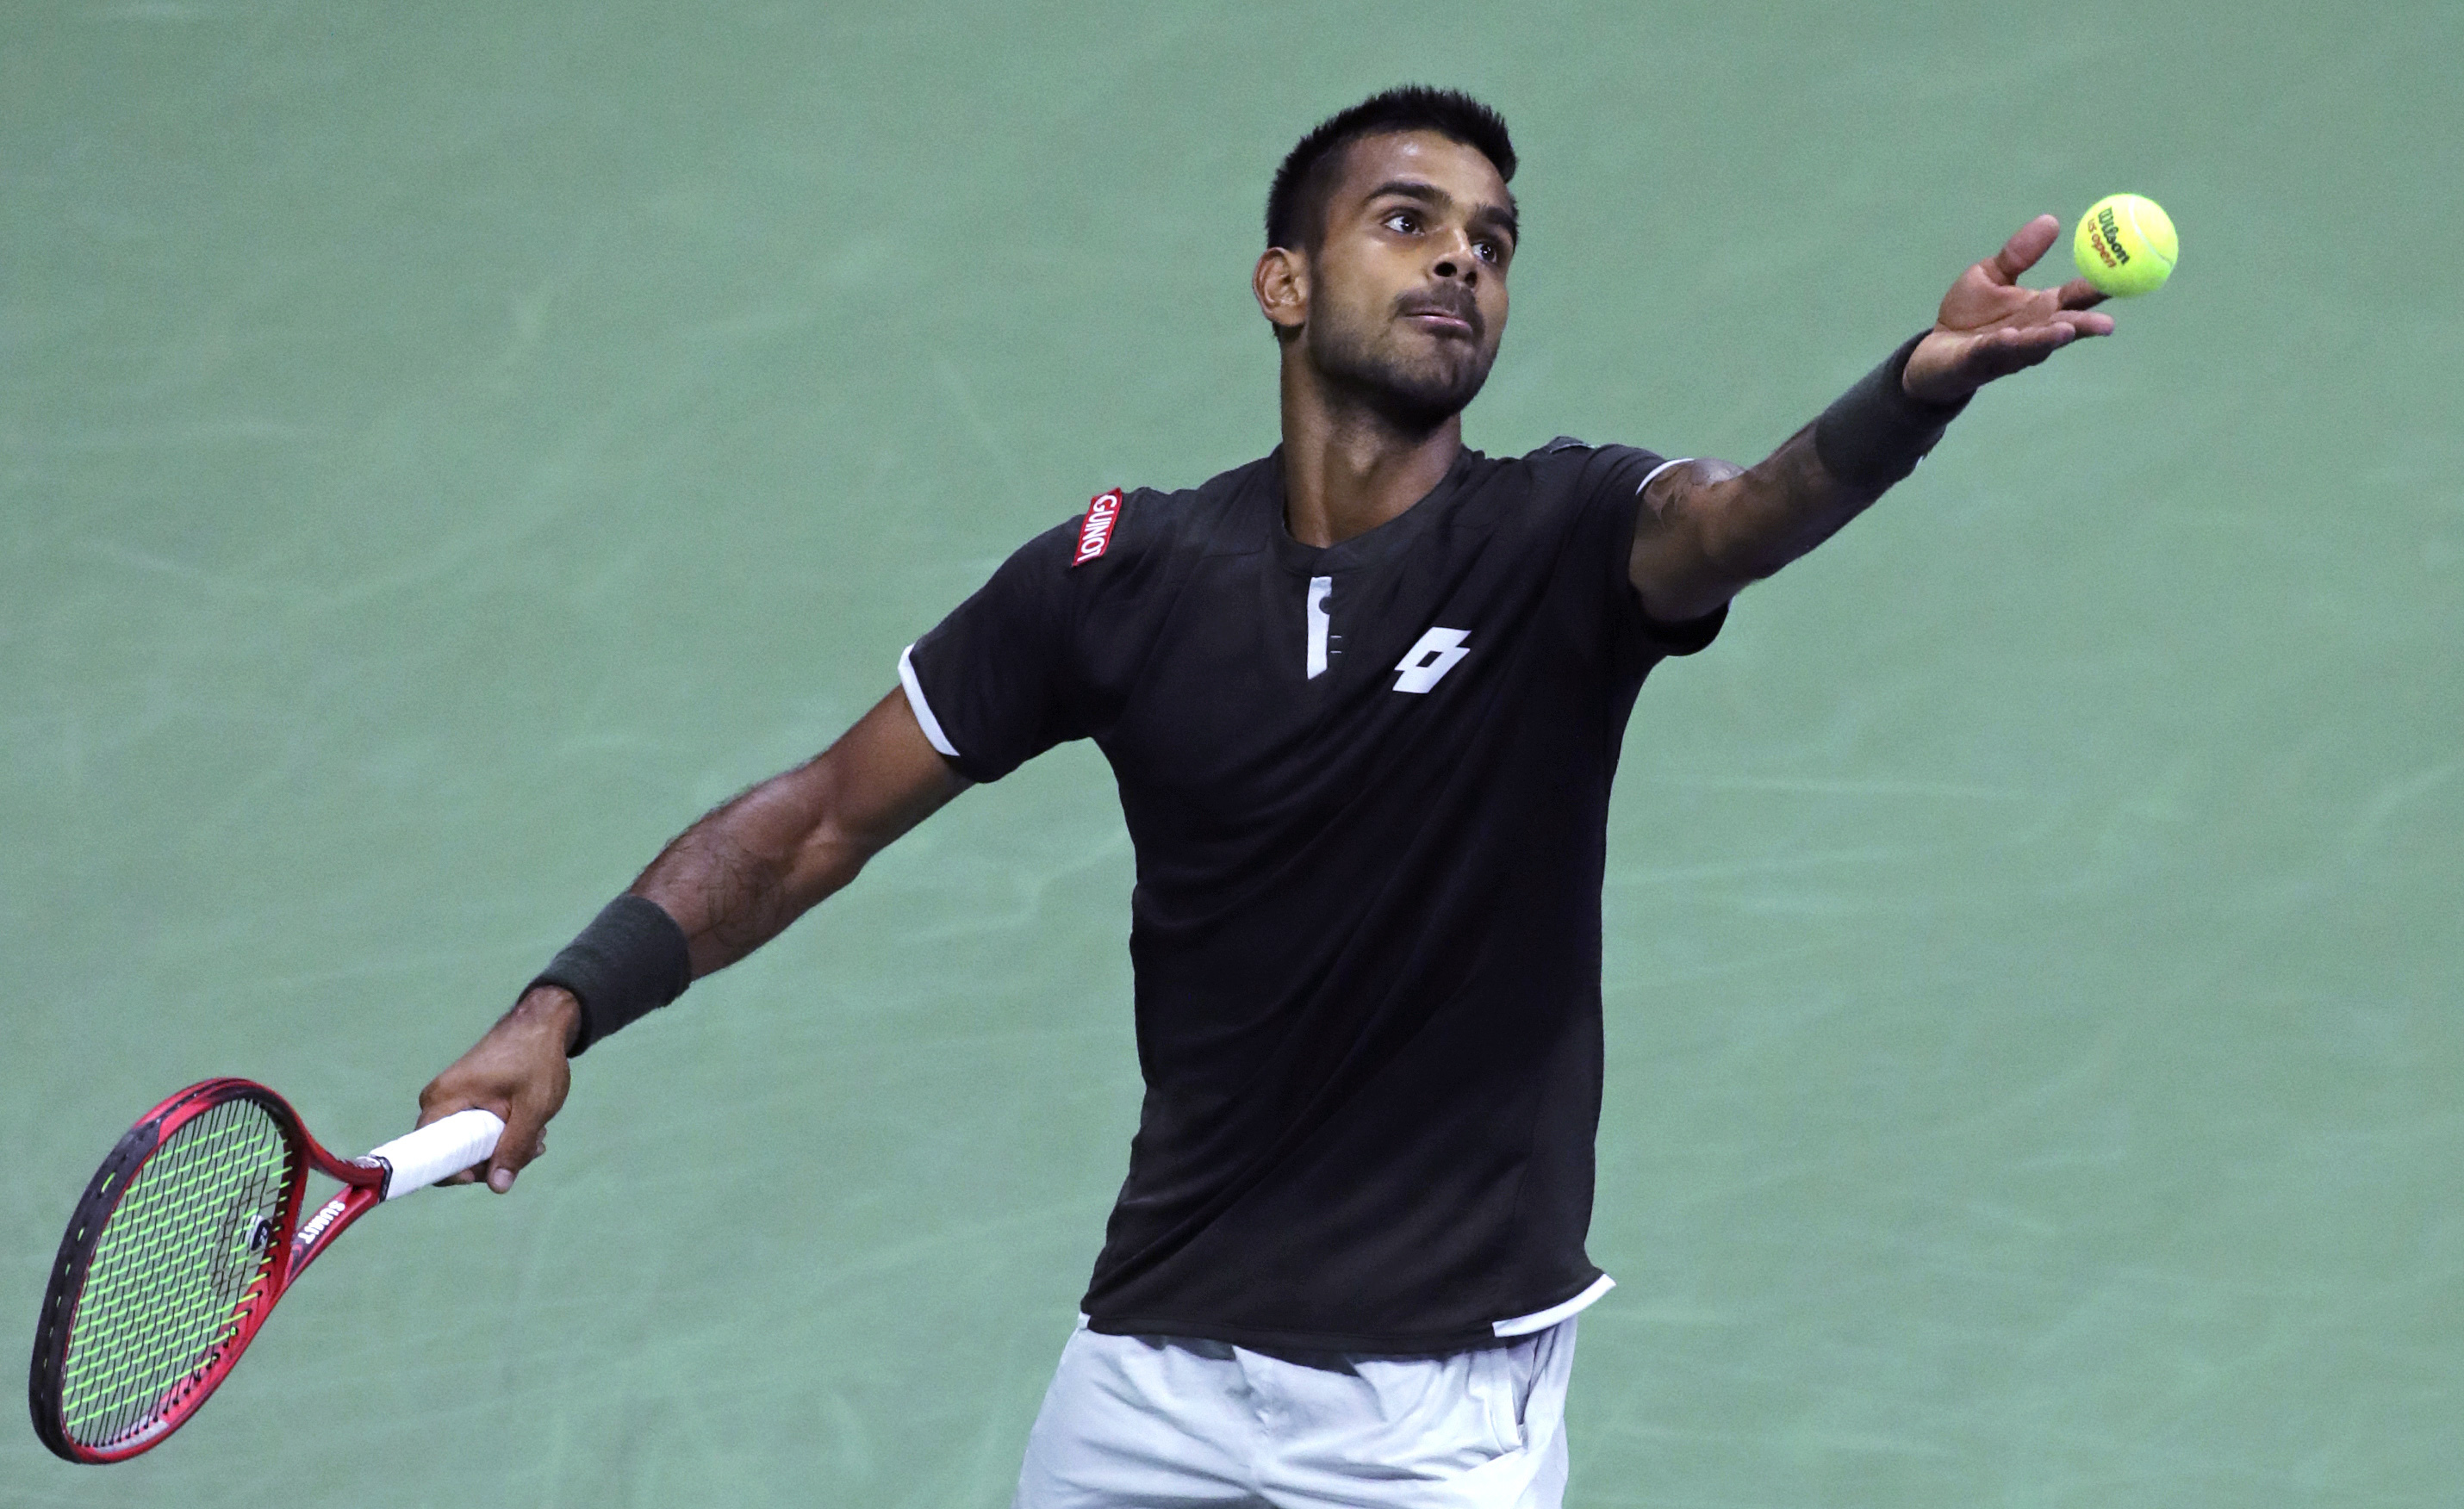 Sumit Nagal serves to Roger Federer in the first round of the US Open in New York.